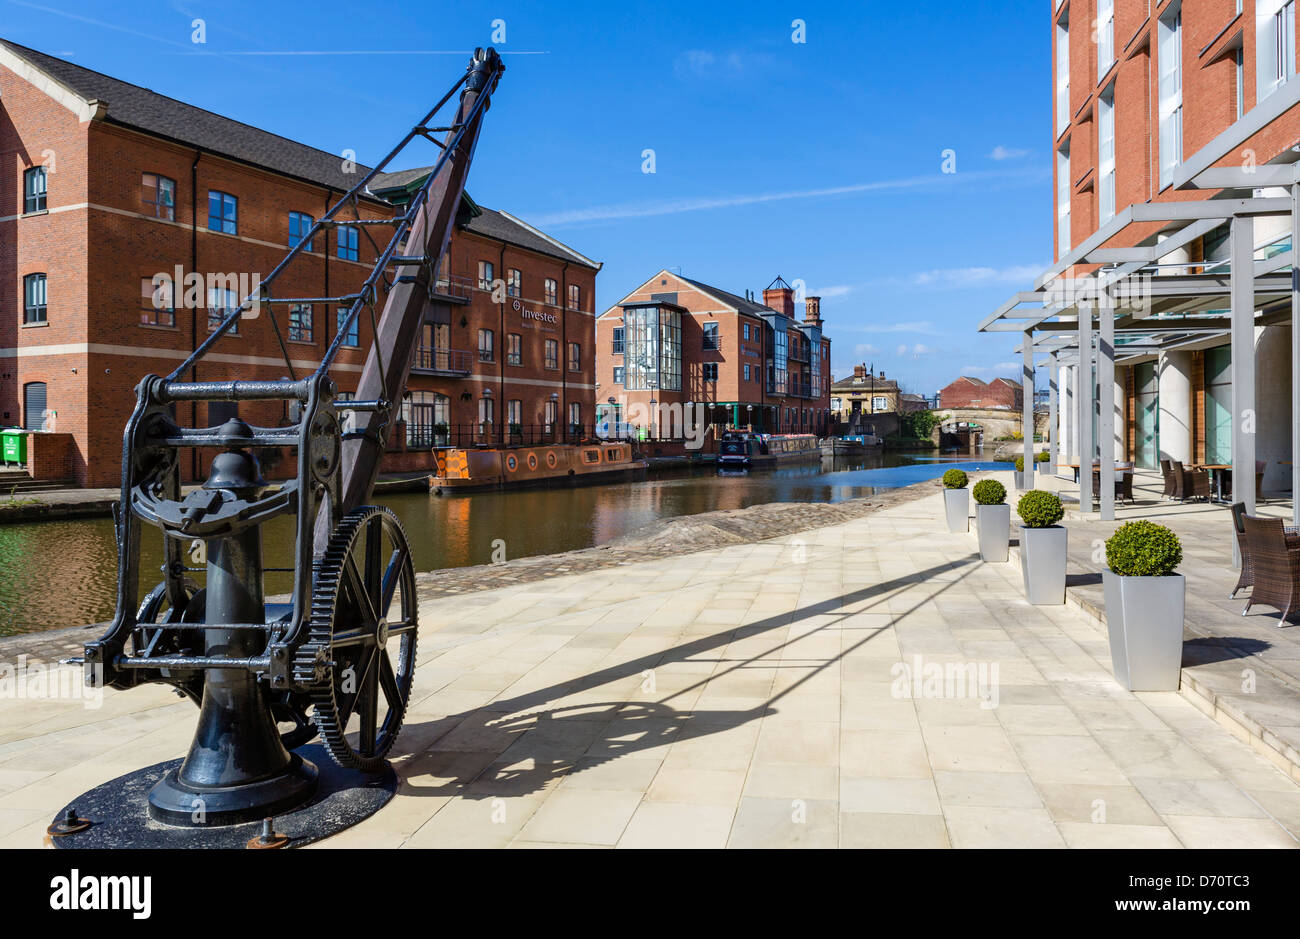 Leeds-Liverpool Canall outside the DoubleTree Hotel at Granary Wharf, Leeds, West Yorkshire, UK - Stock Image